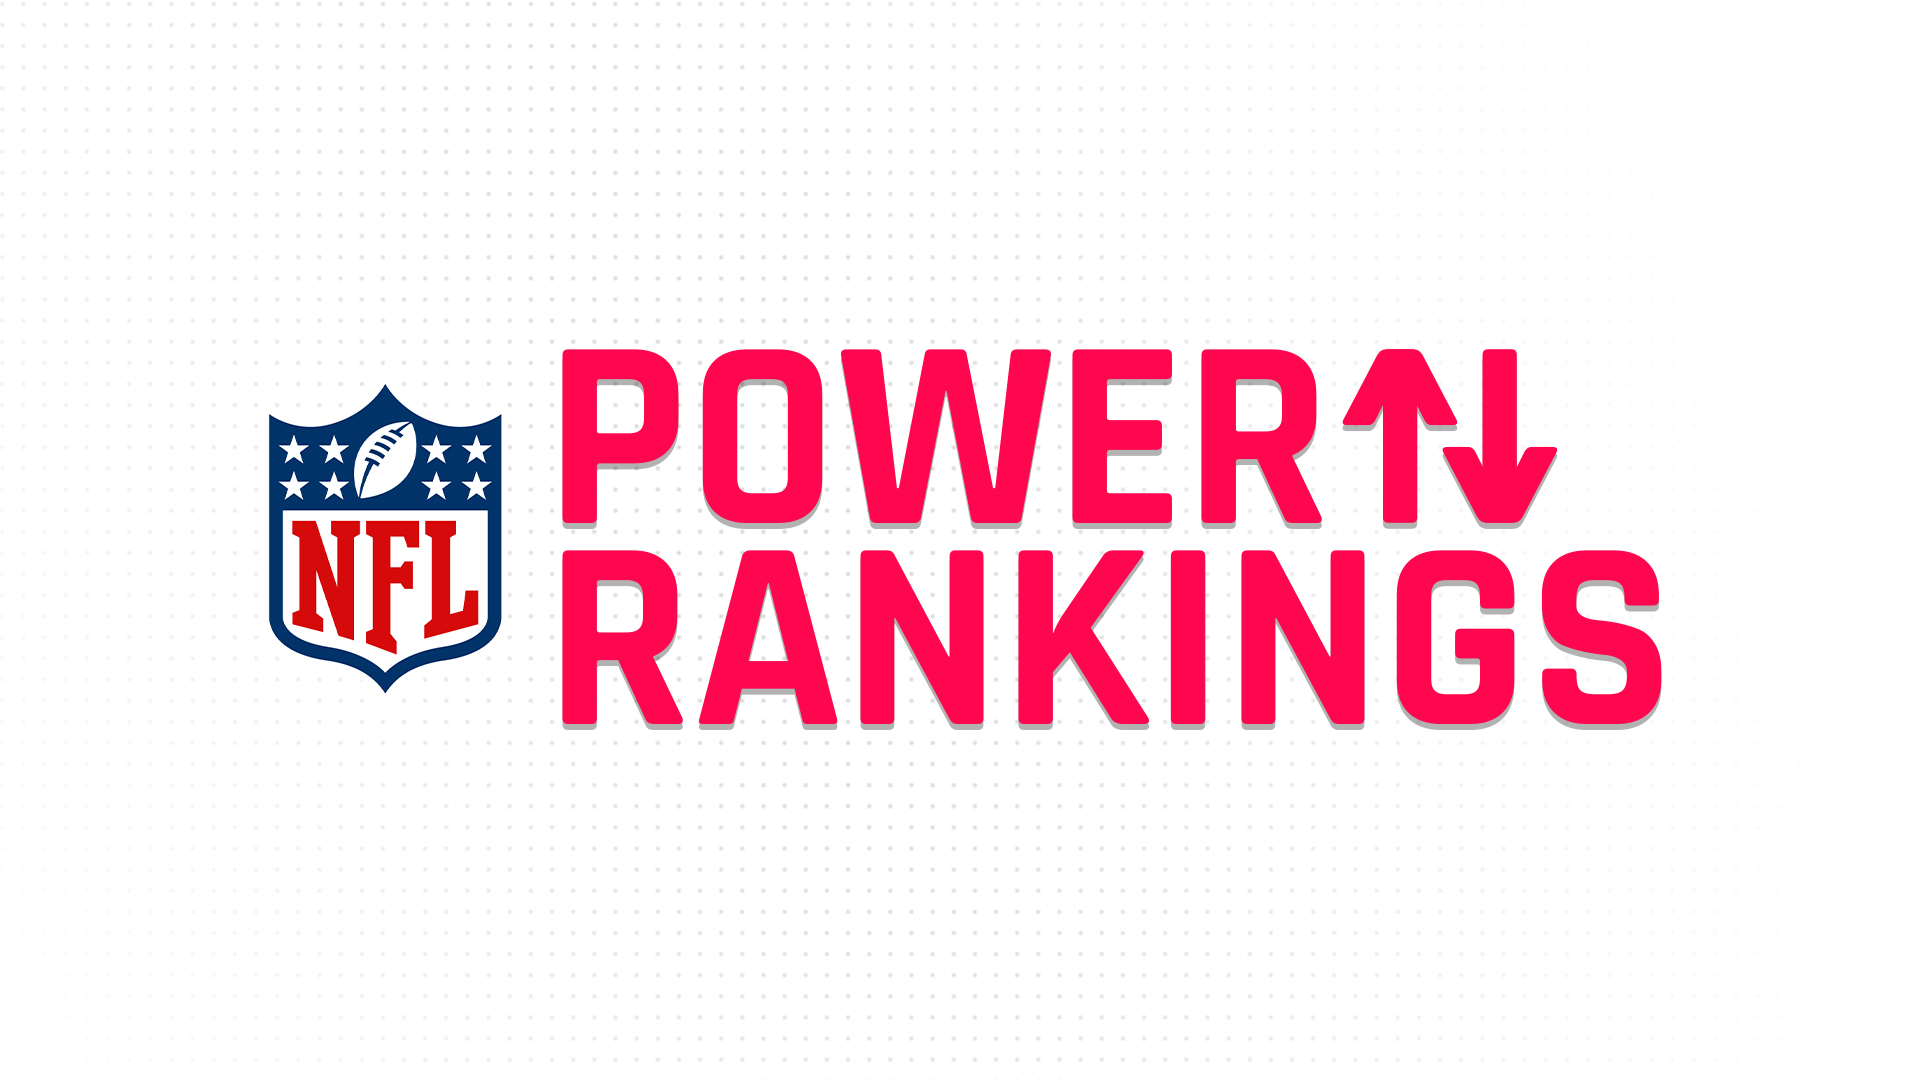 NFL power rankings: Chiefs still ahead of Steelers, Packers; Patriots, Browns climb for Week 14